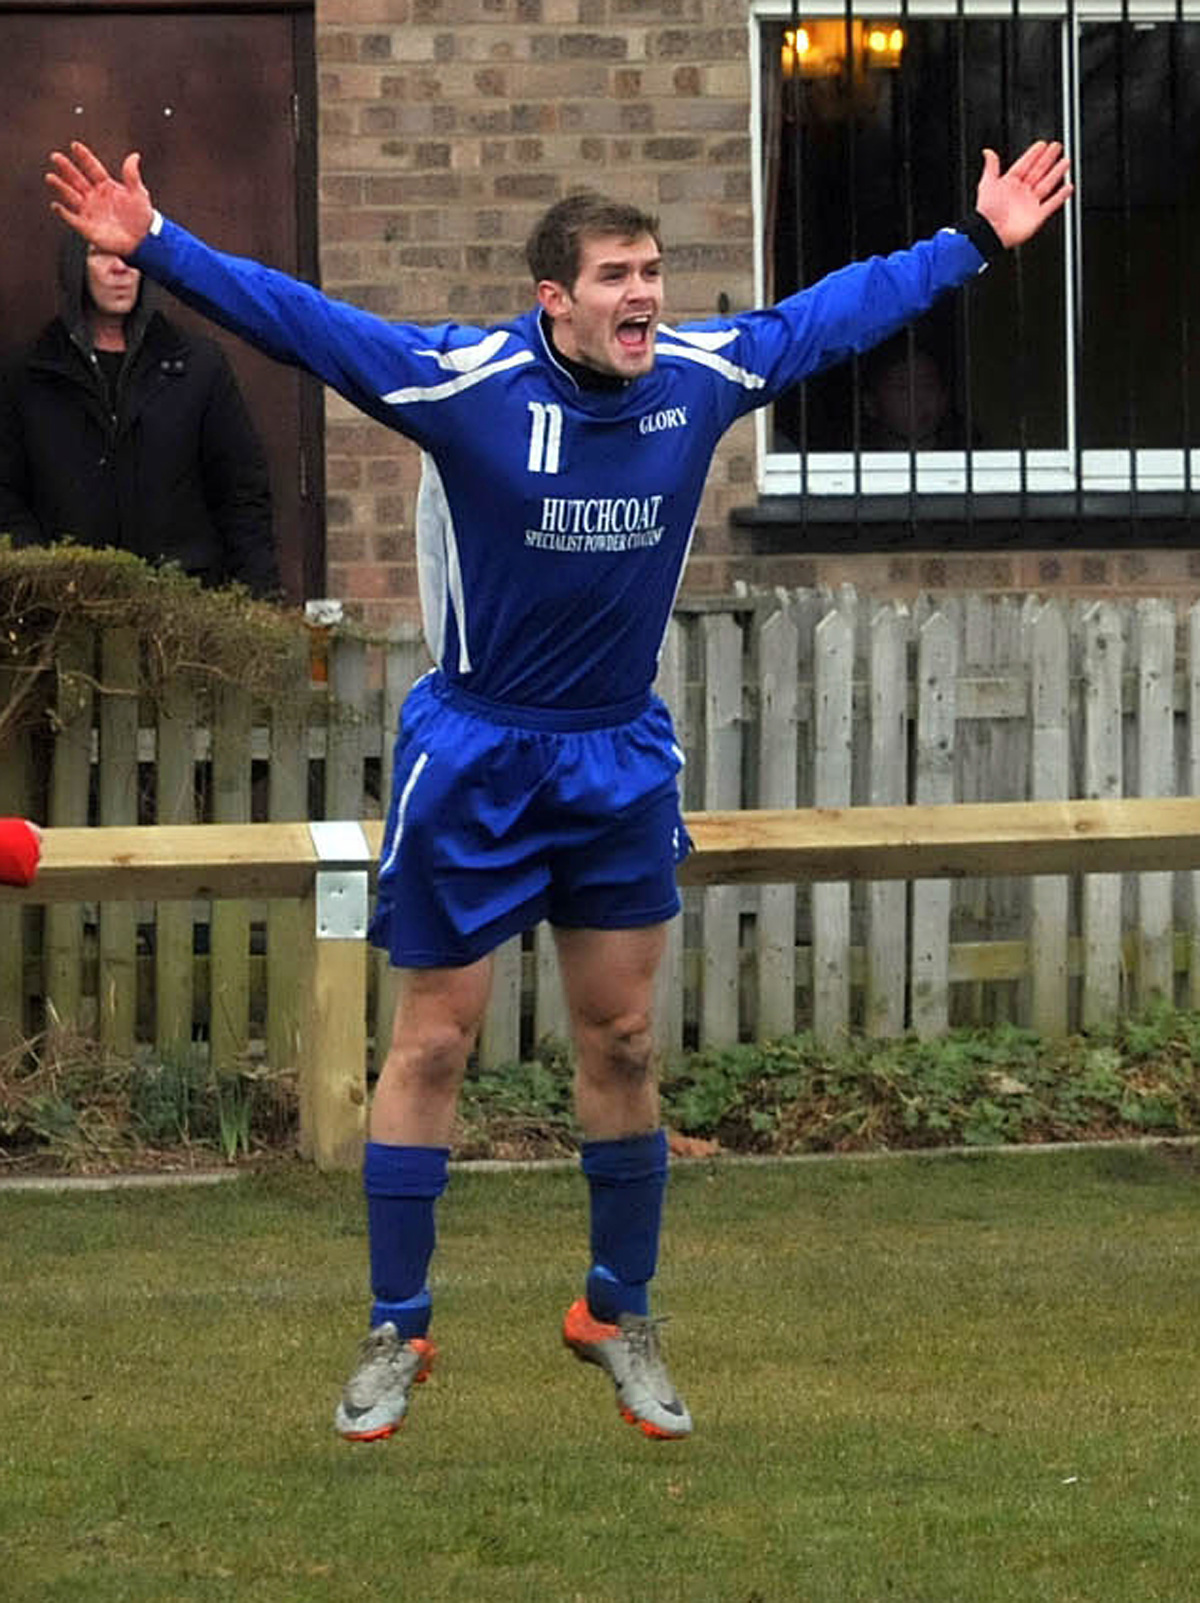 Tom Paley, who bagged a hat-trick in Terrington Glory's win